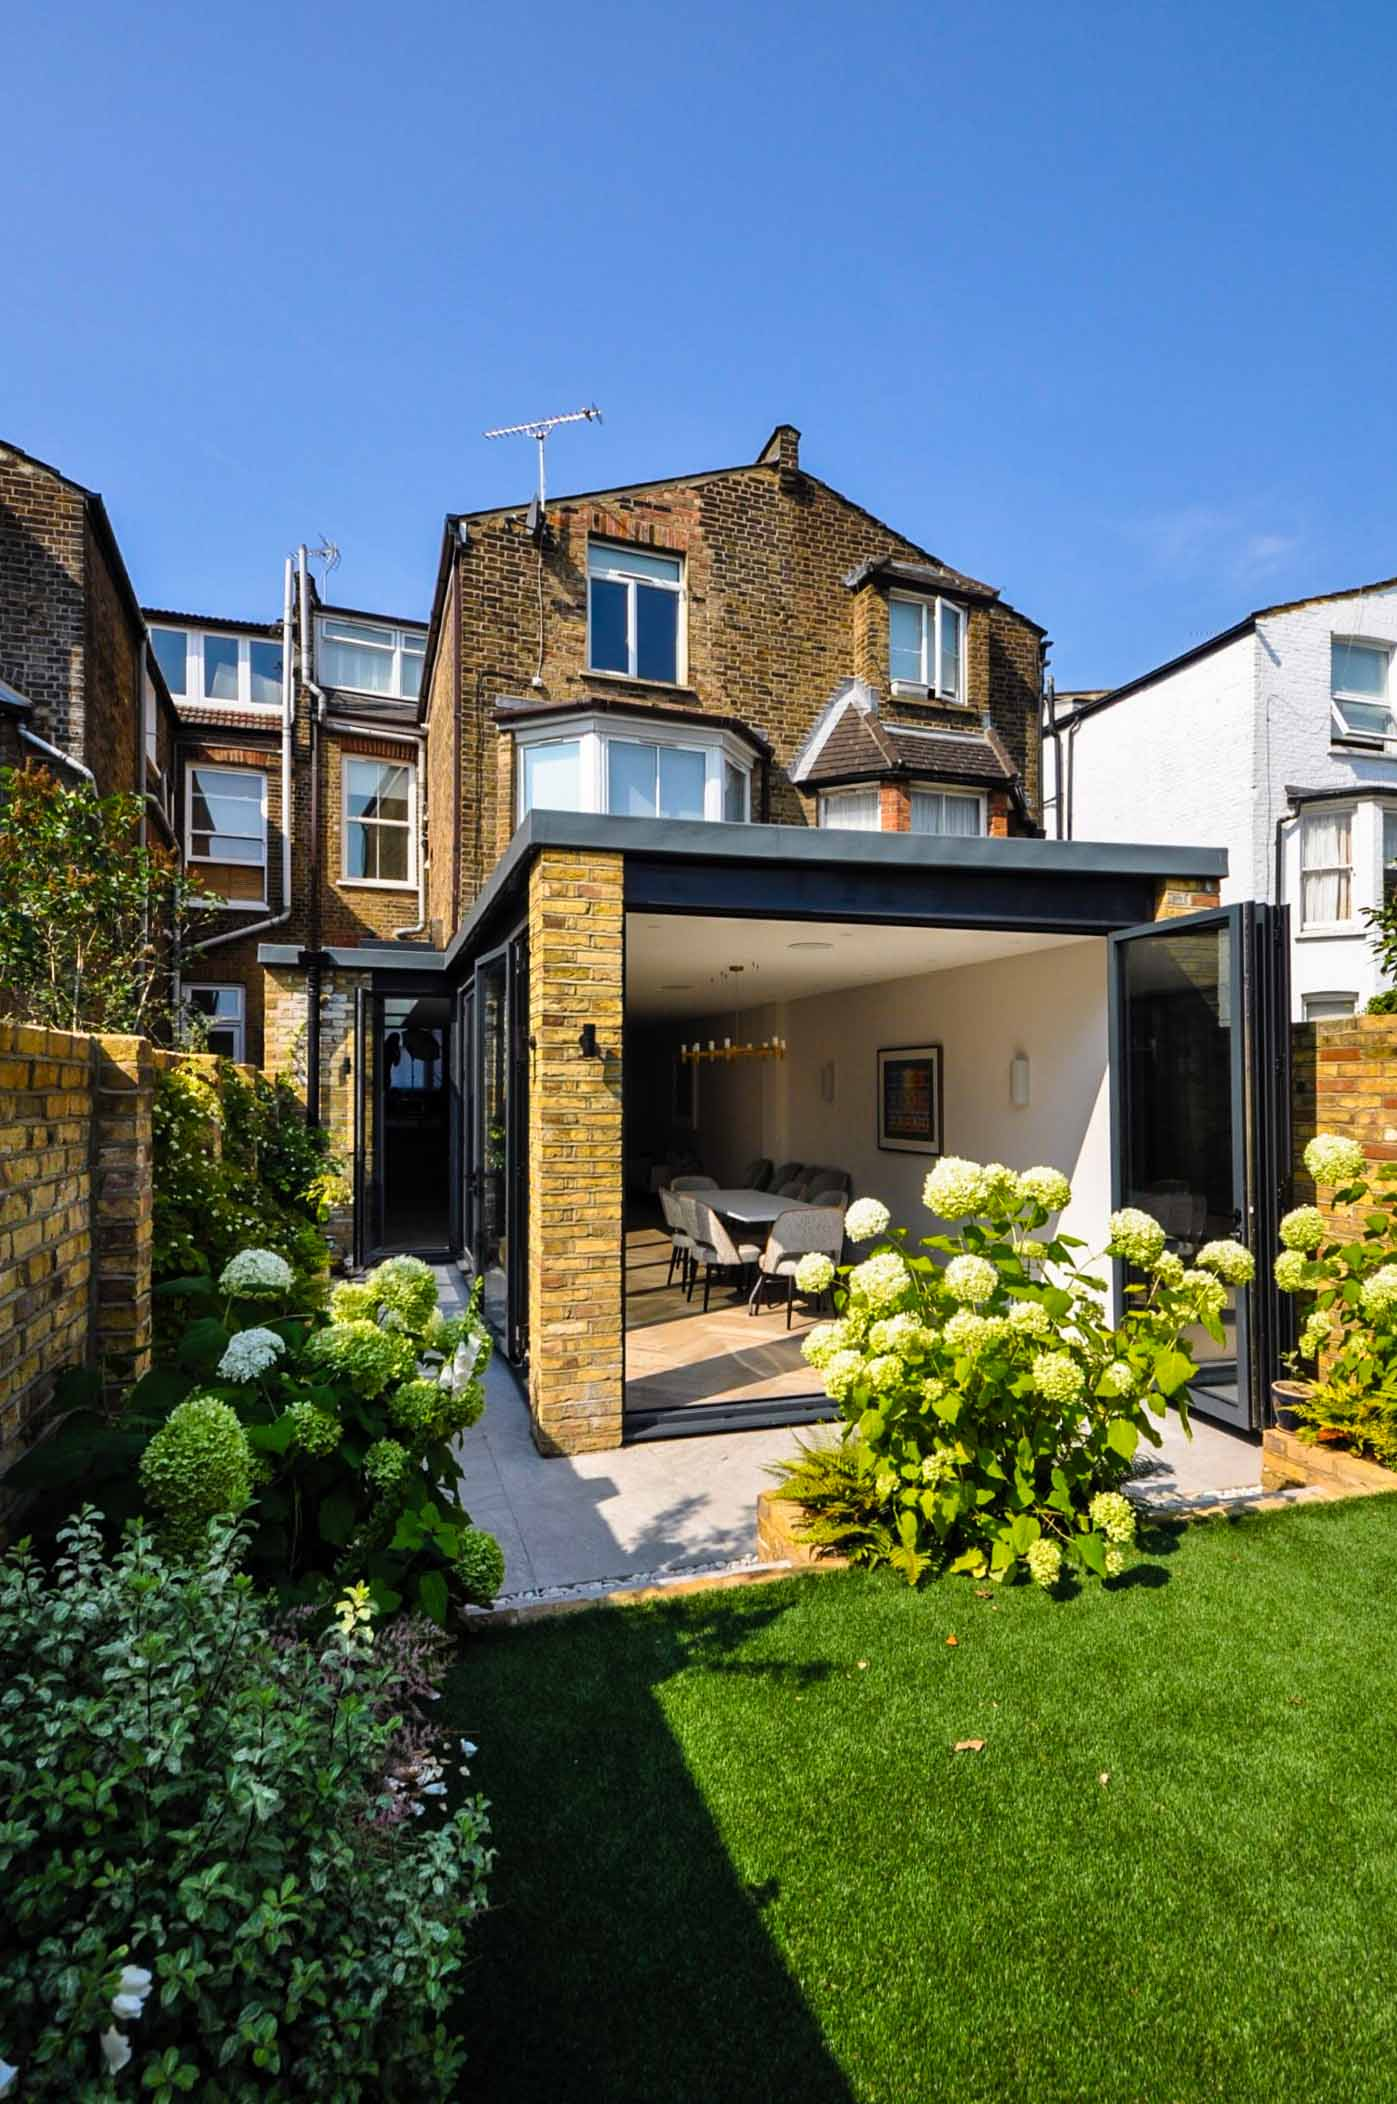 Exterior garden view for a completed kitchen extension with a modern spacious interior in West Hampstead